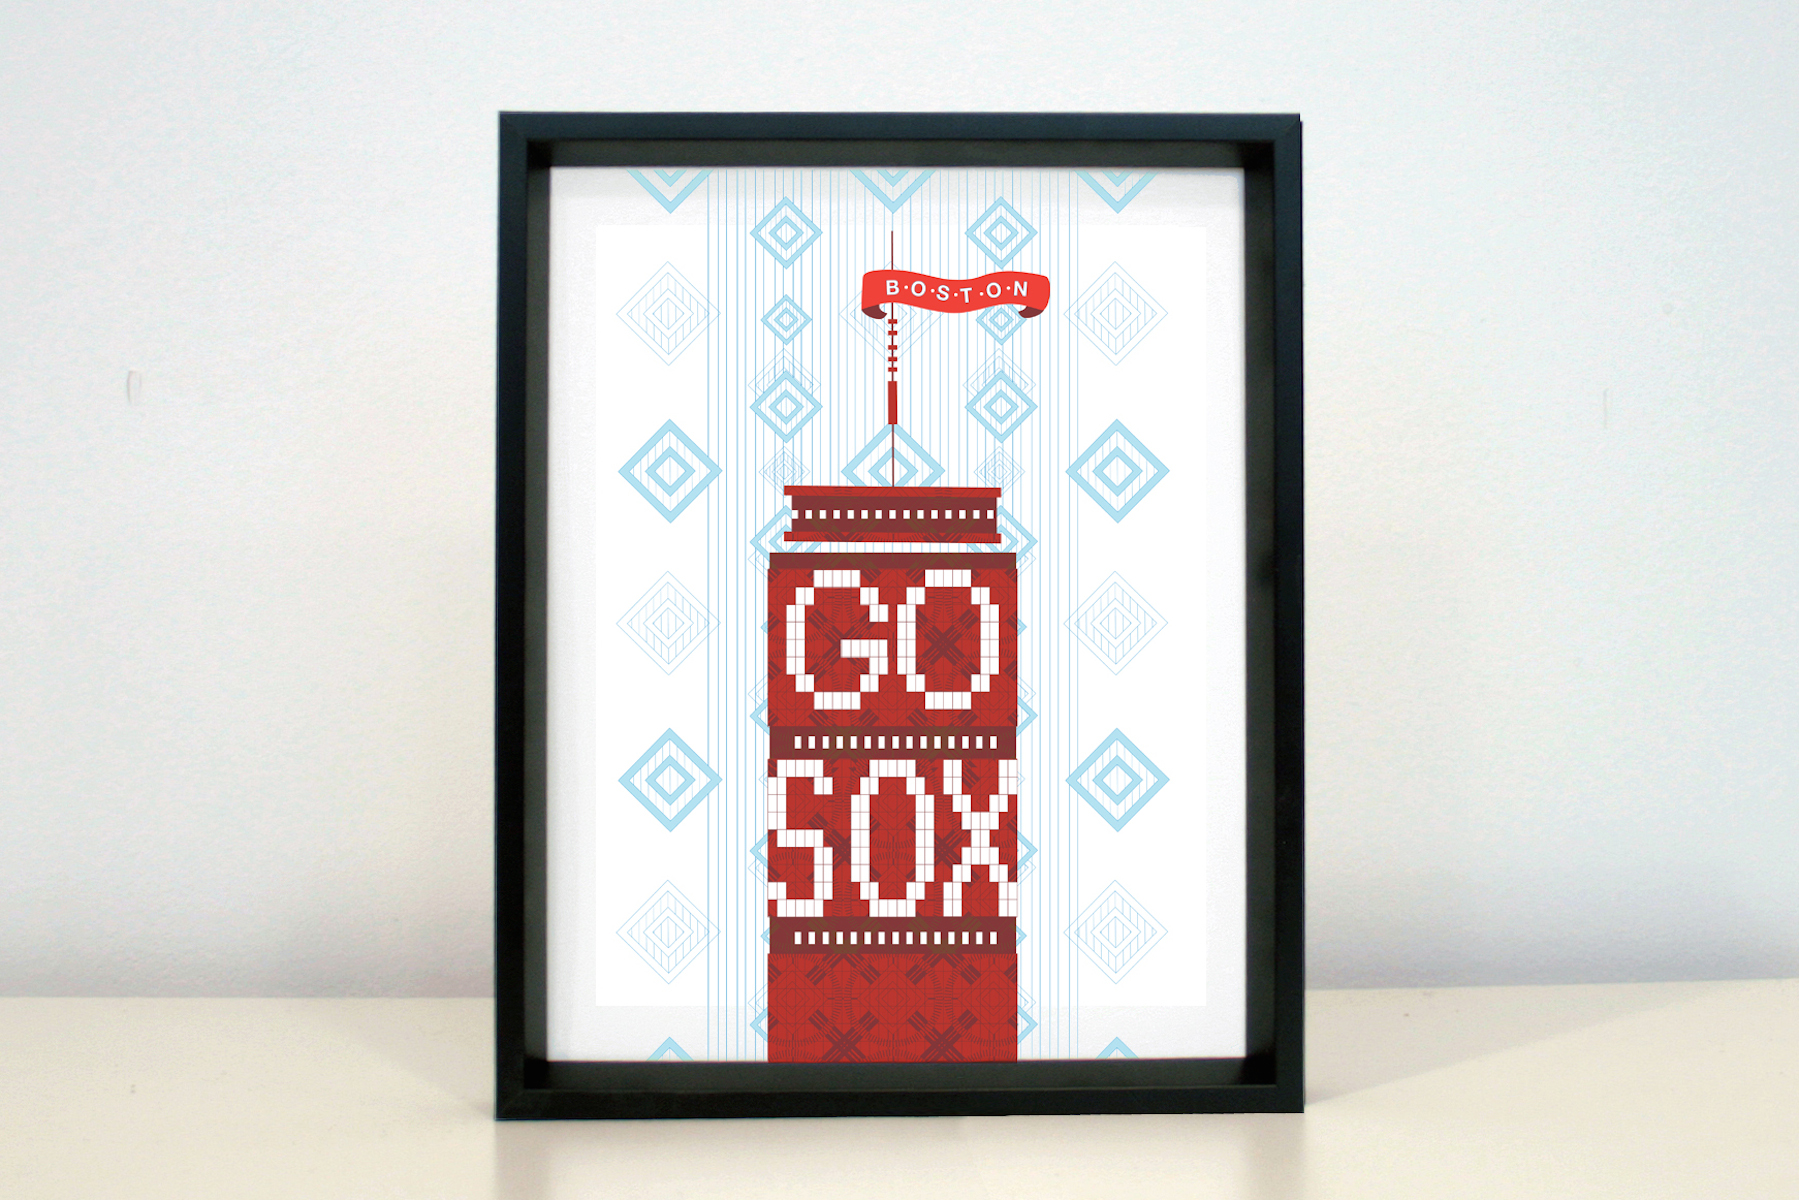 Prudential Town Go Sox framed drawing now available at the Fenway location as part of the West Elm LOCAL collection.